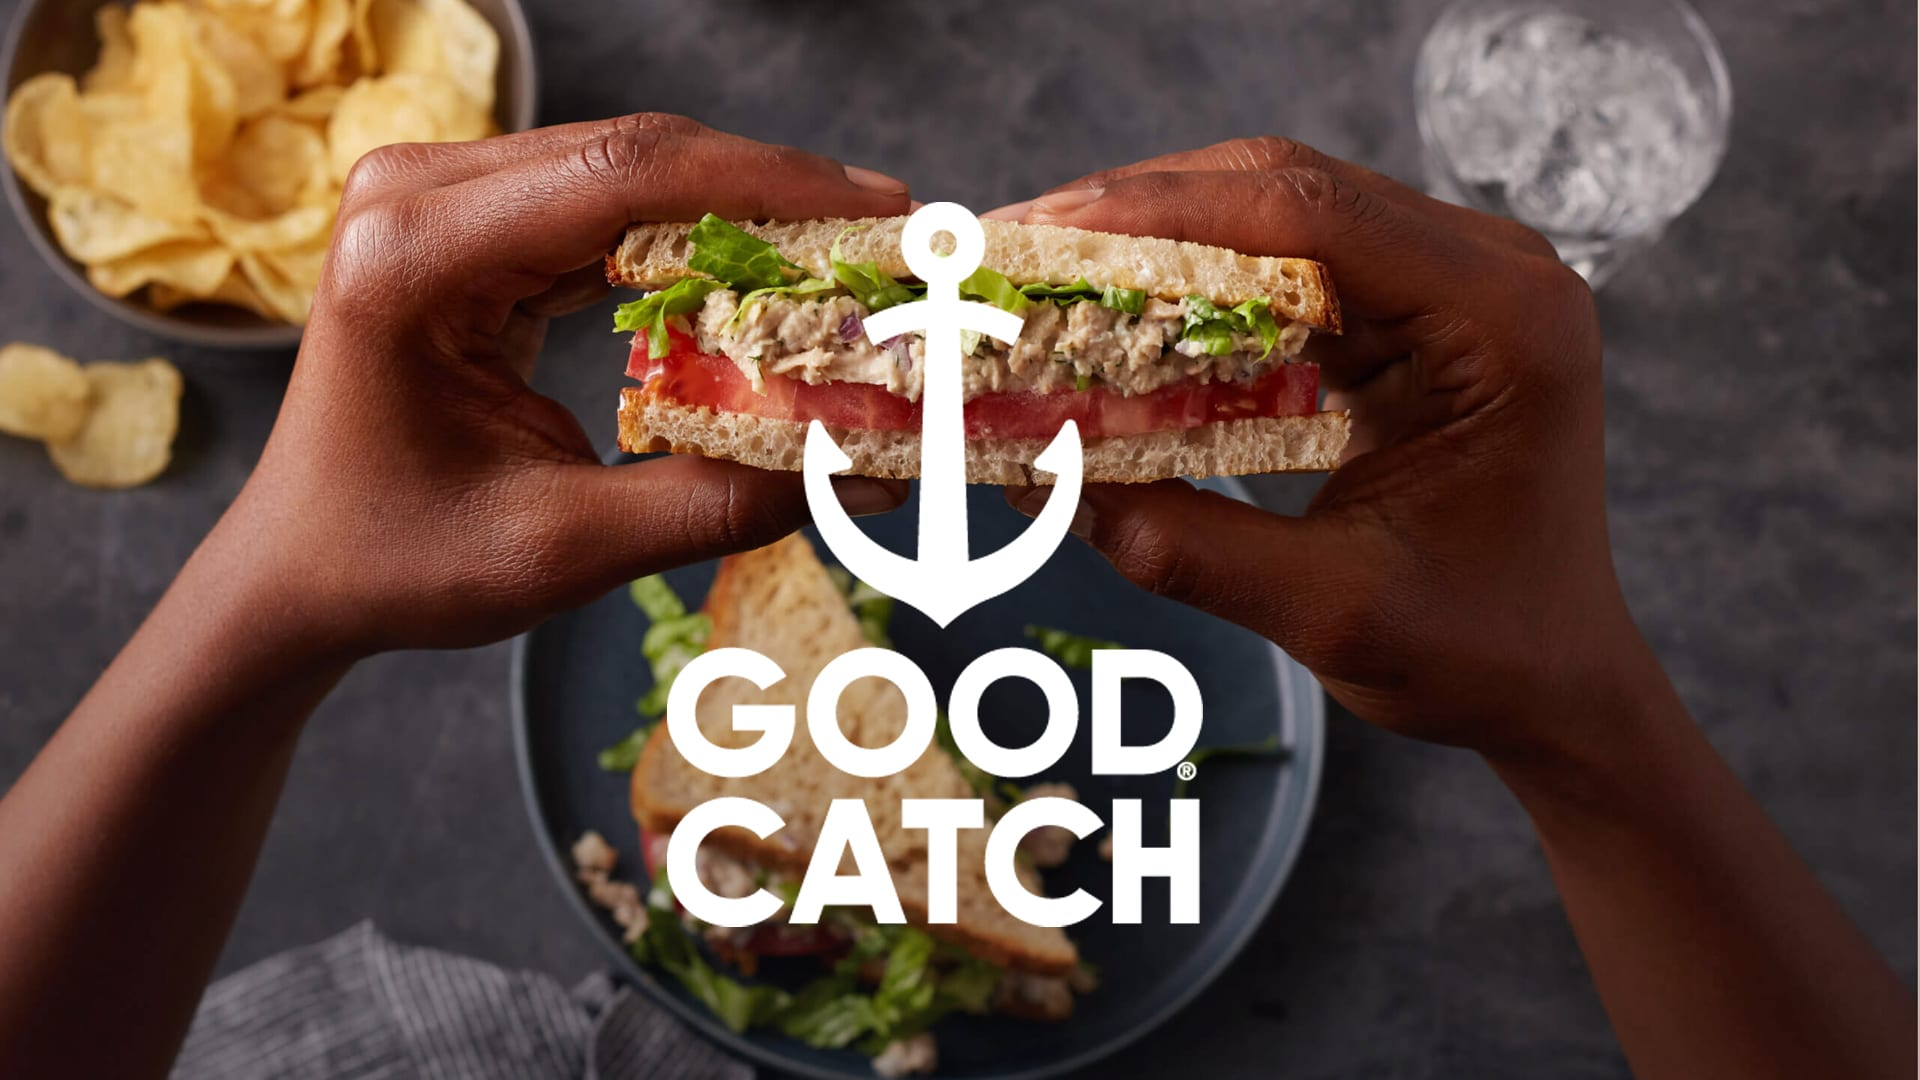 Grayling nets full service European brief  for plant-based seafood brand Good Catch®